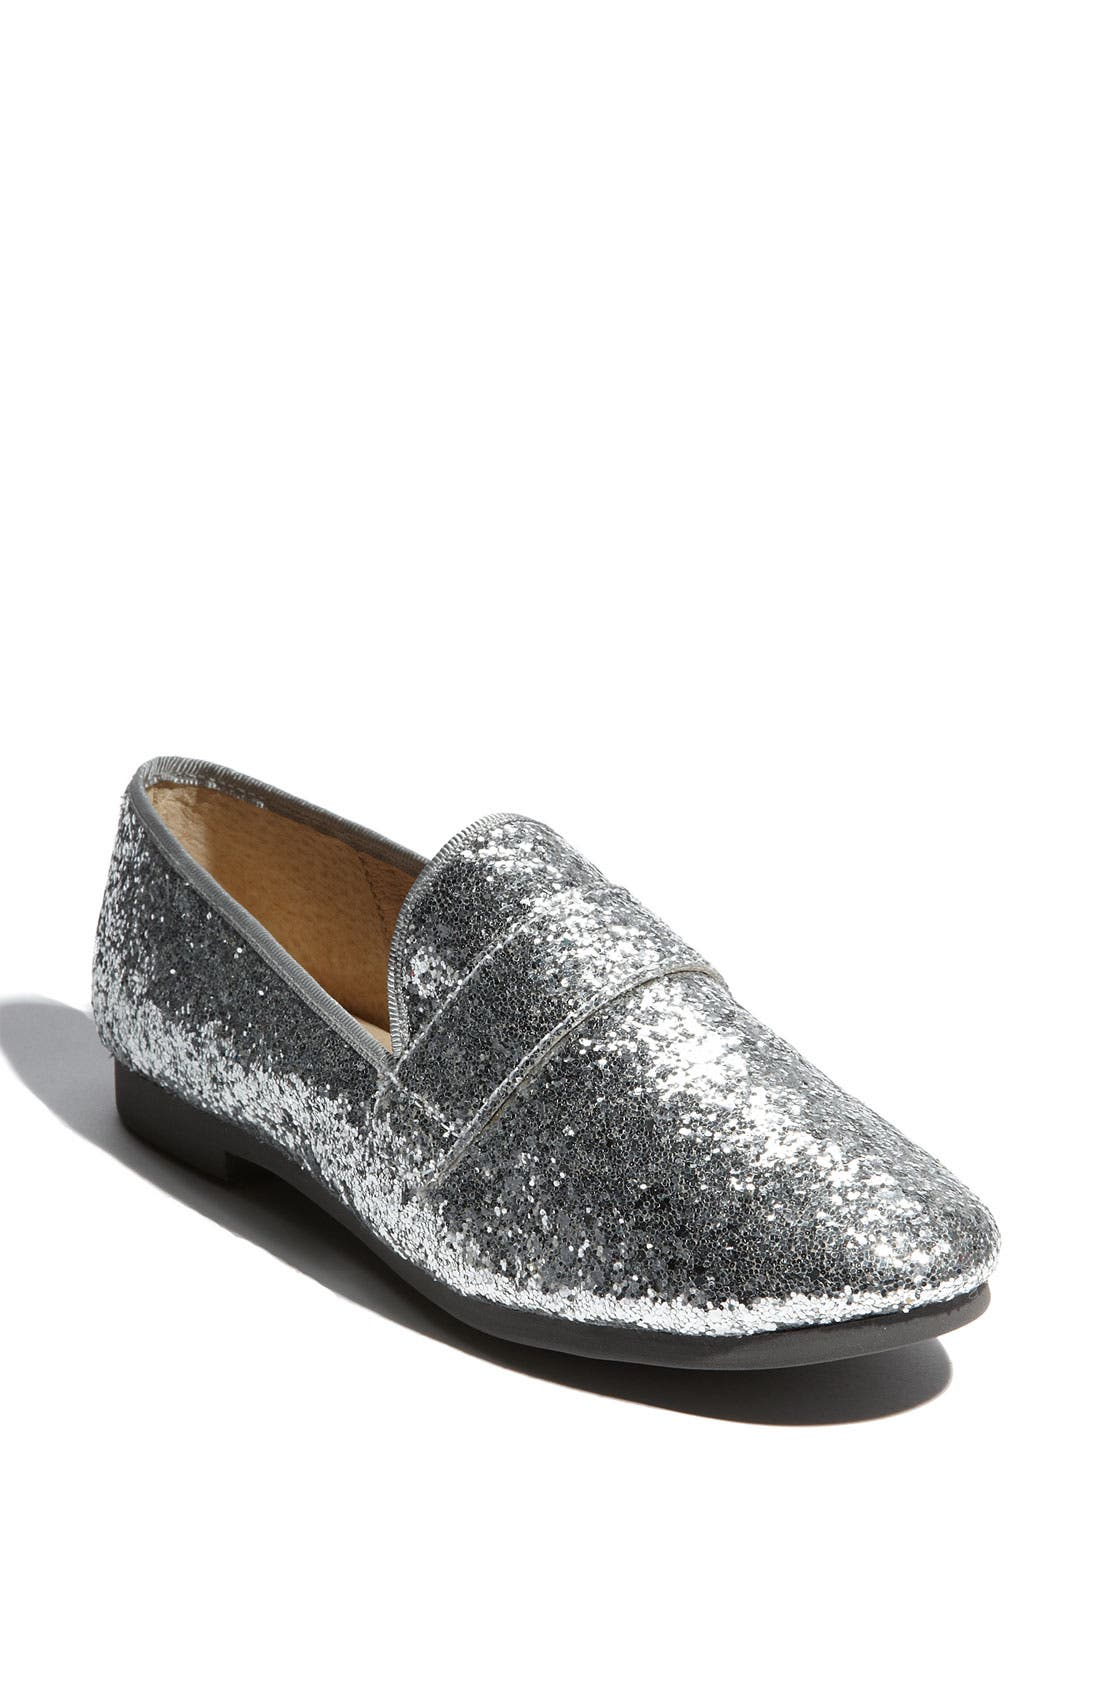 Alternate Image 1 Selected - Steve Madden 'Eltonn' Flat